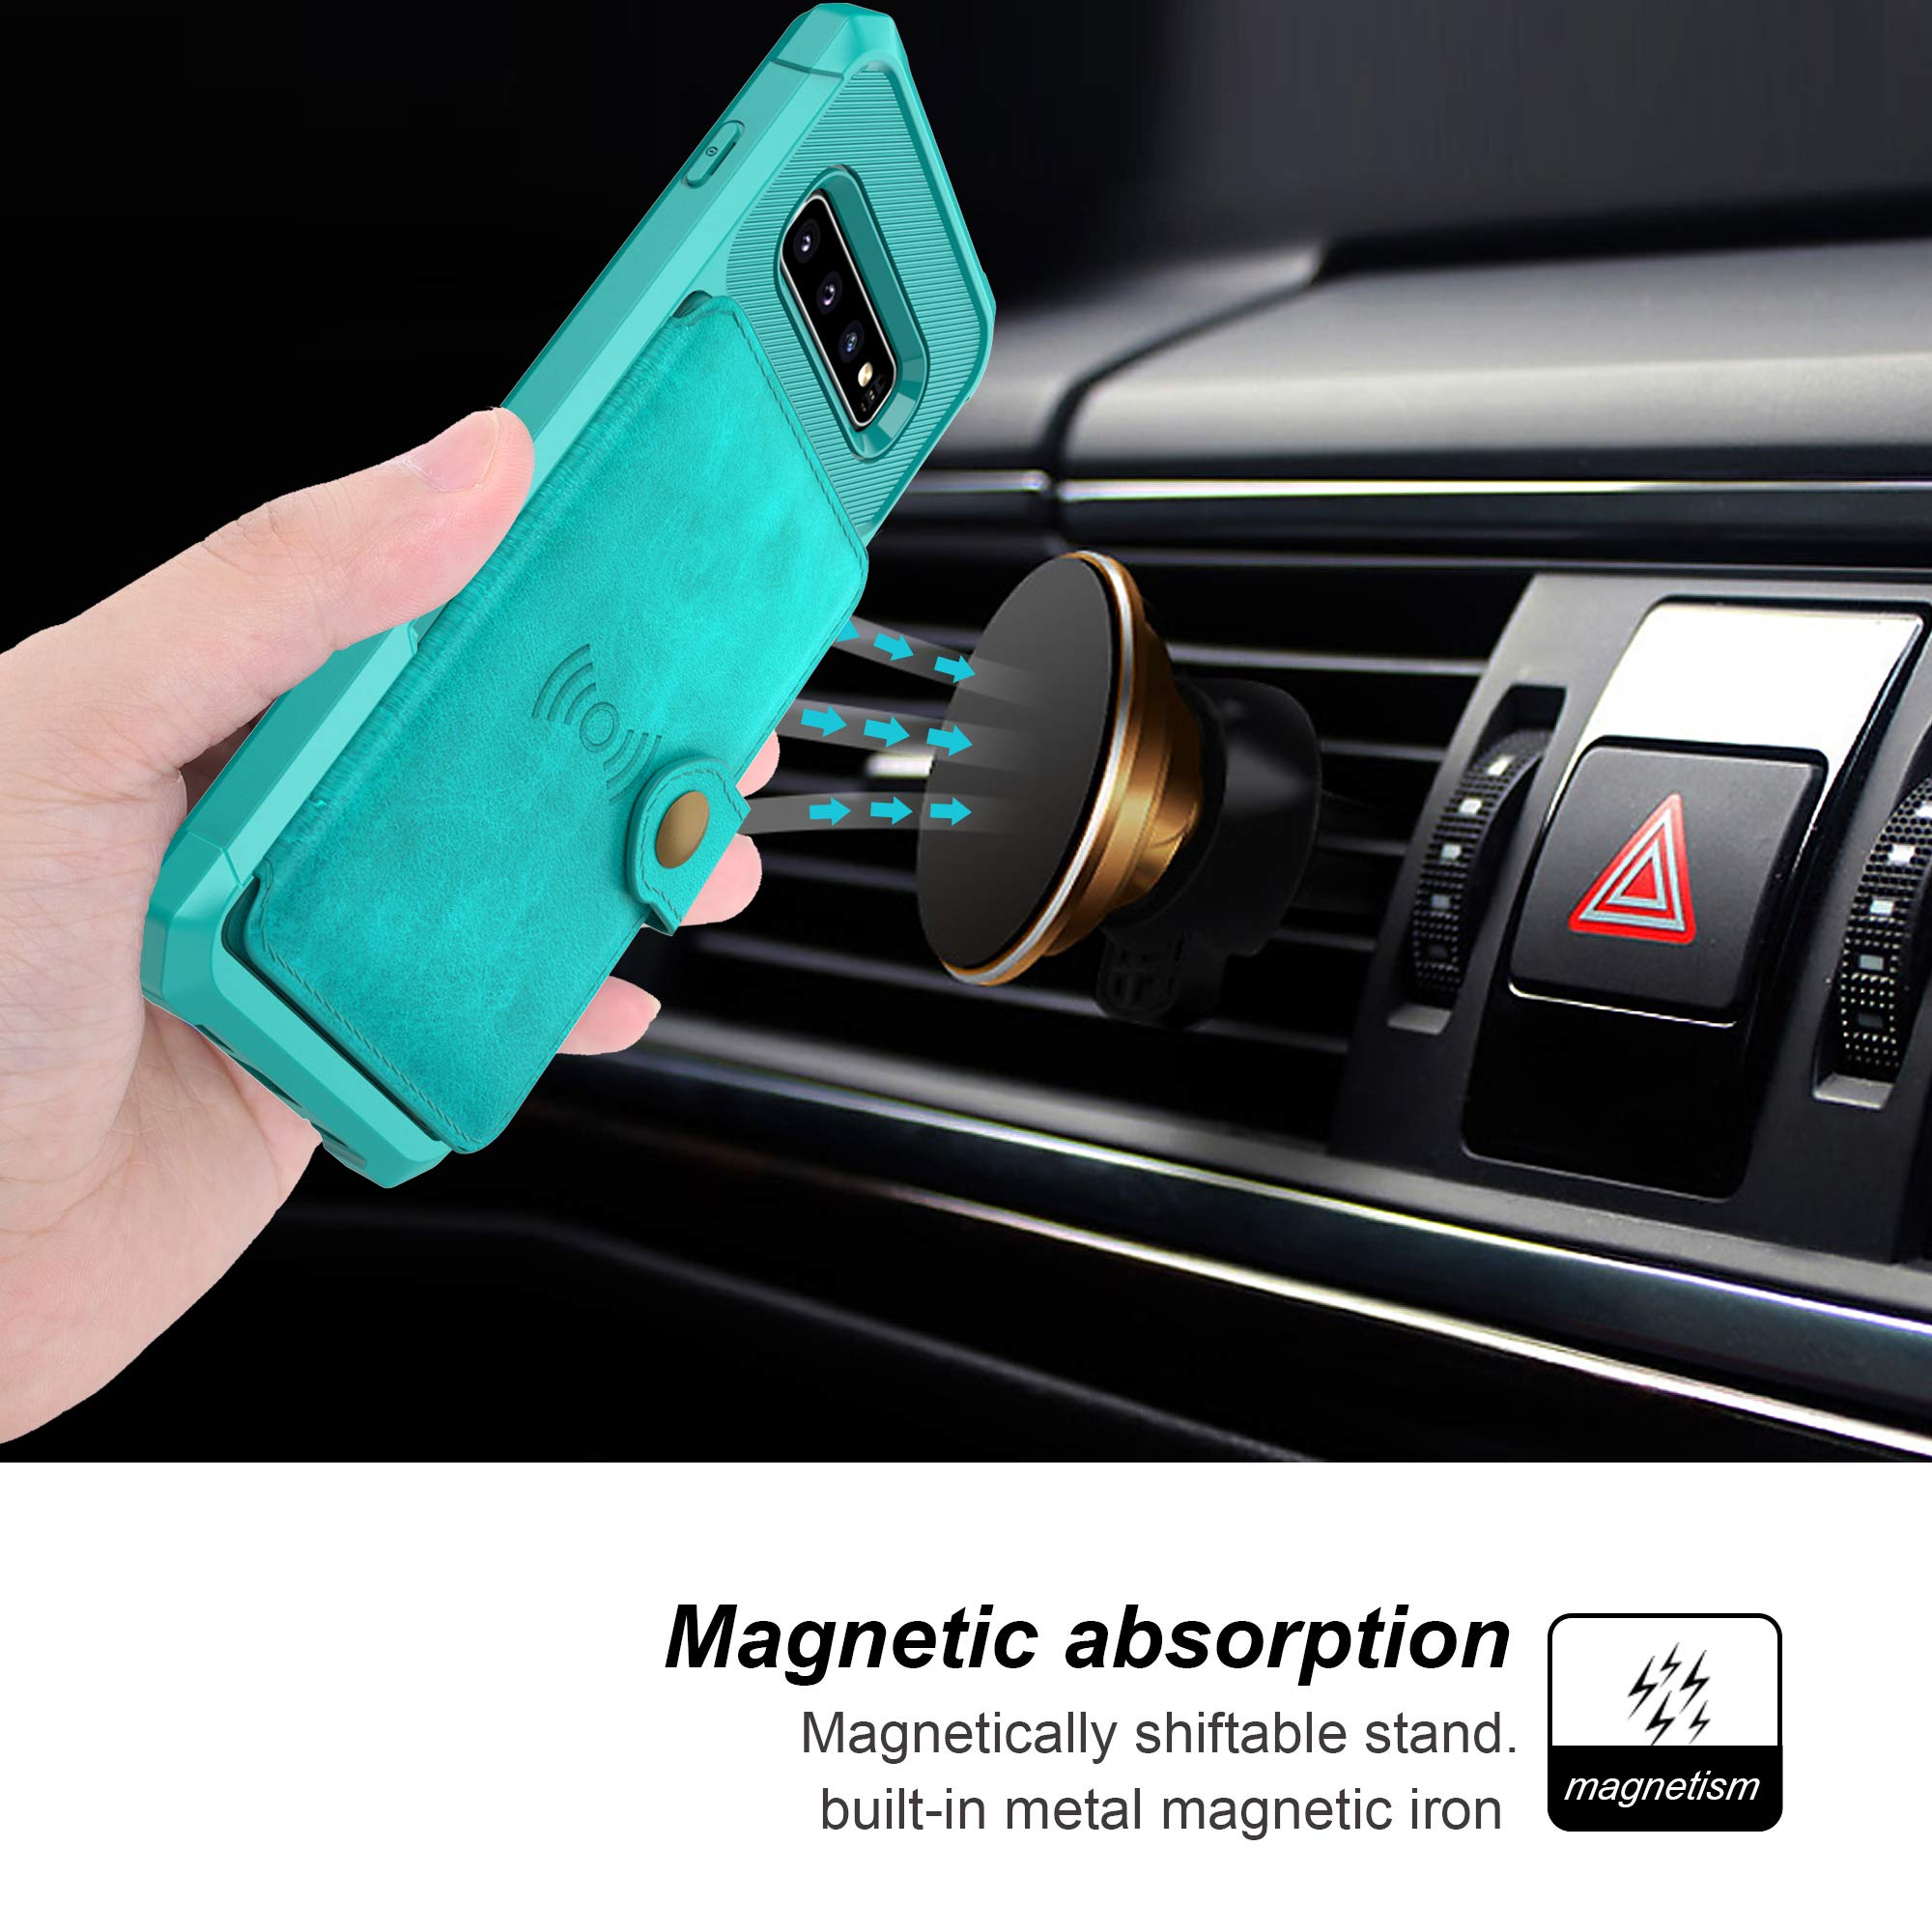 Samsung Galaxy S10 Case, Sumsung S10 Wallet Flip Leather Kickstand Fit Magnetic Car Mount Wireless Charging Slim Durable Shockproof Protective Case Cover with Card Holder (Turquoise)